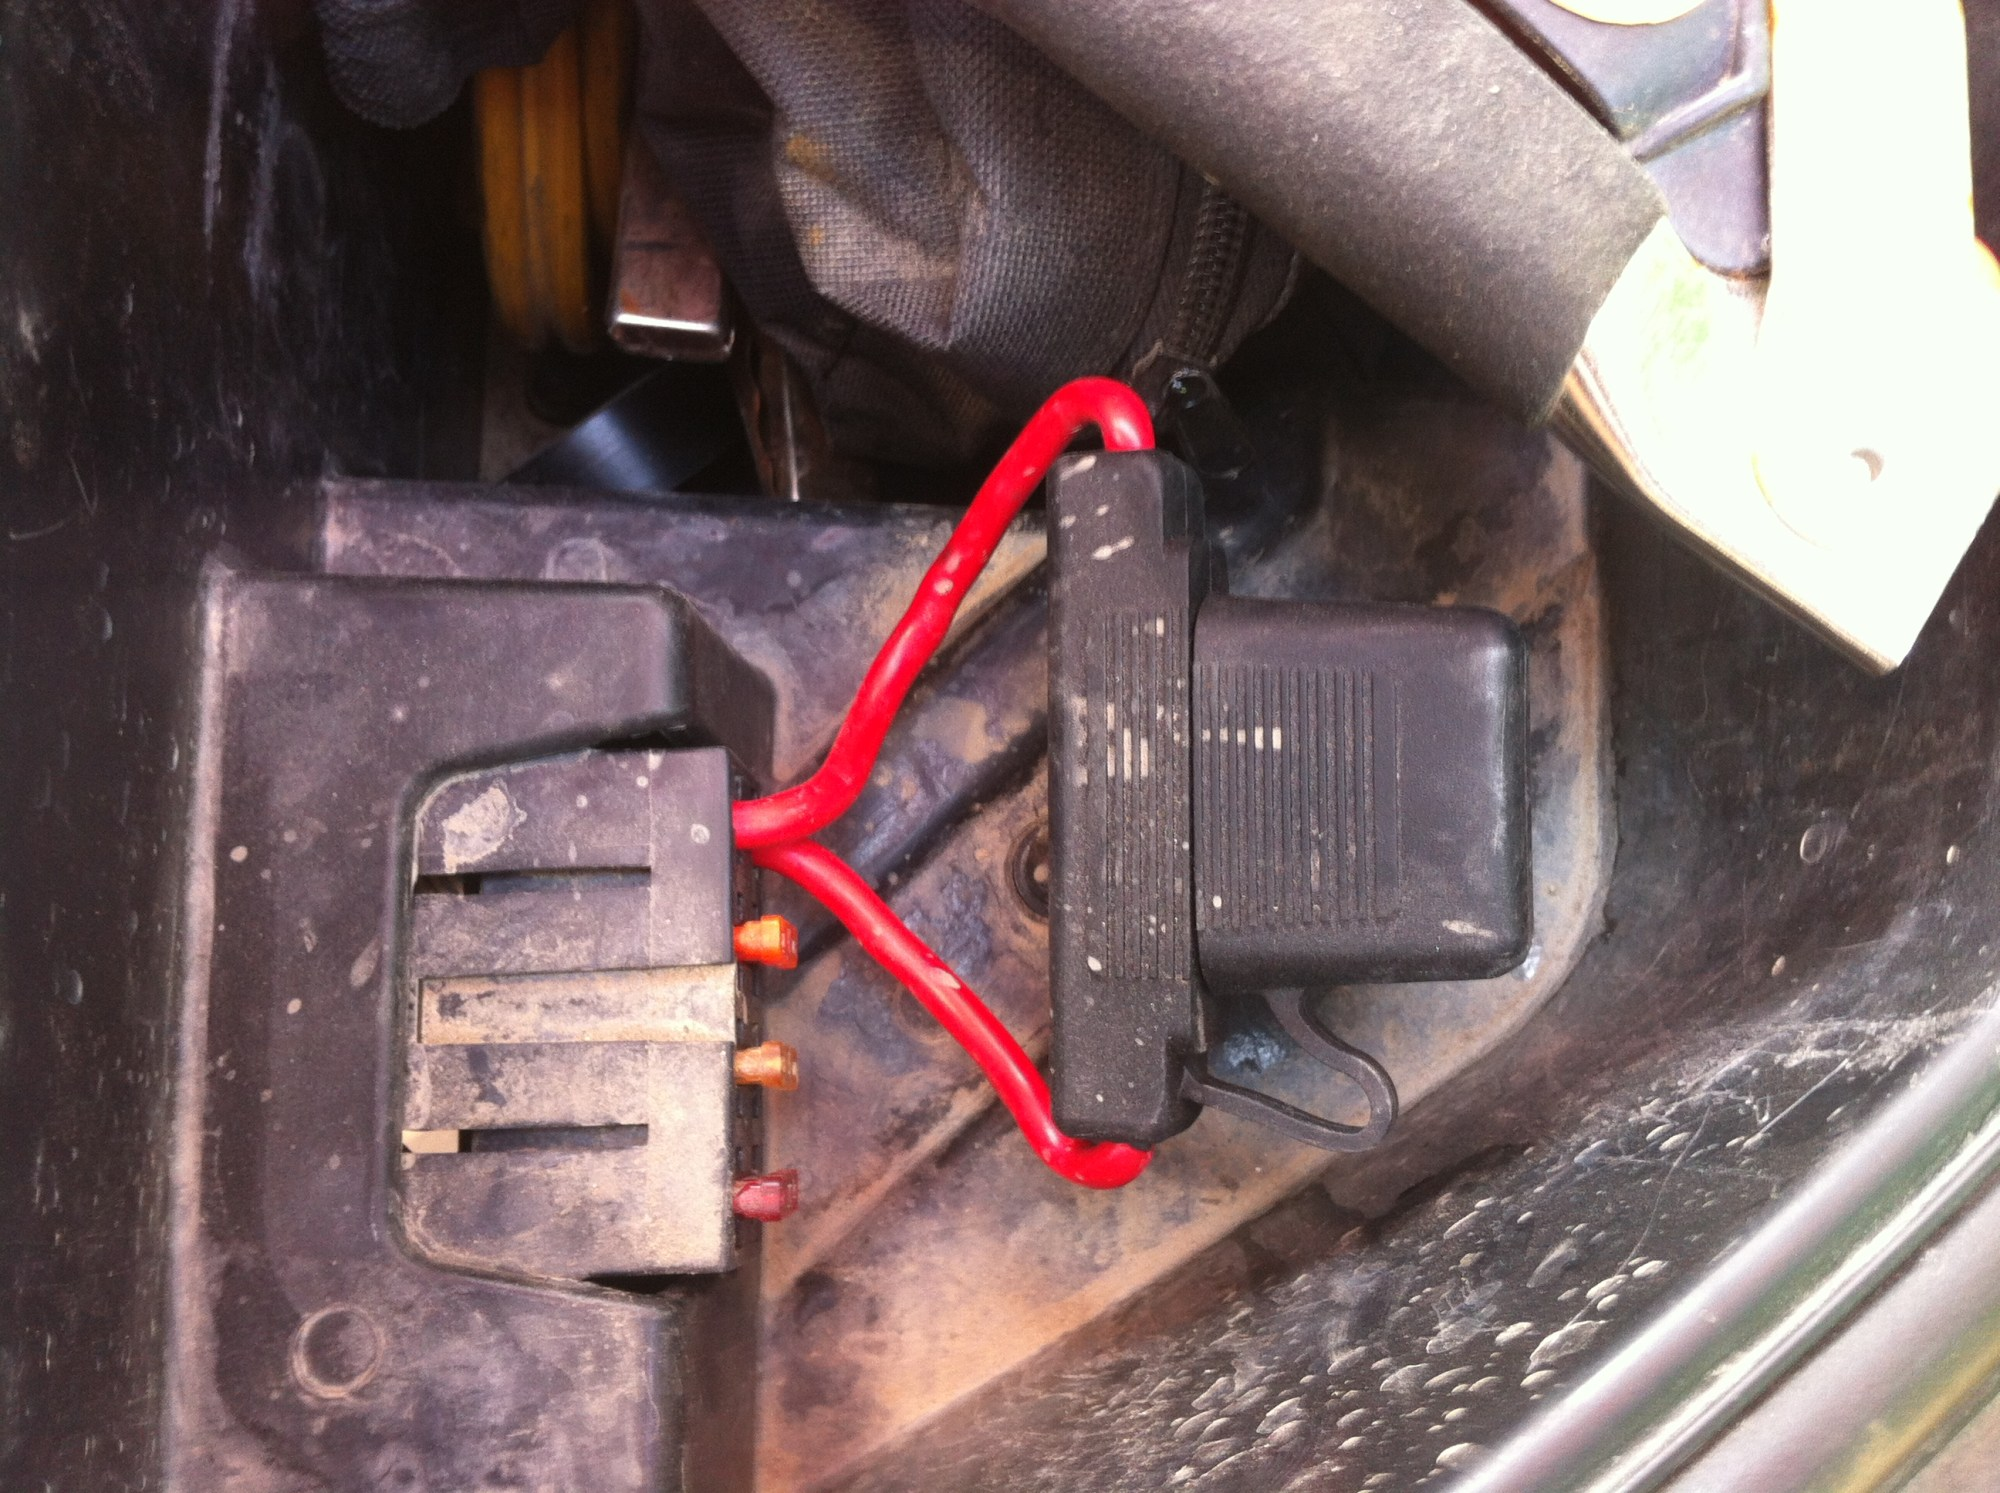 hight resolution of 620i fuse wiring diagram wiring diagram centre john deere 825i gator fuse box location 620i fuse